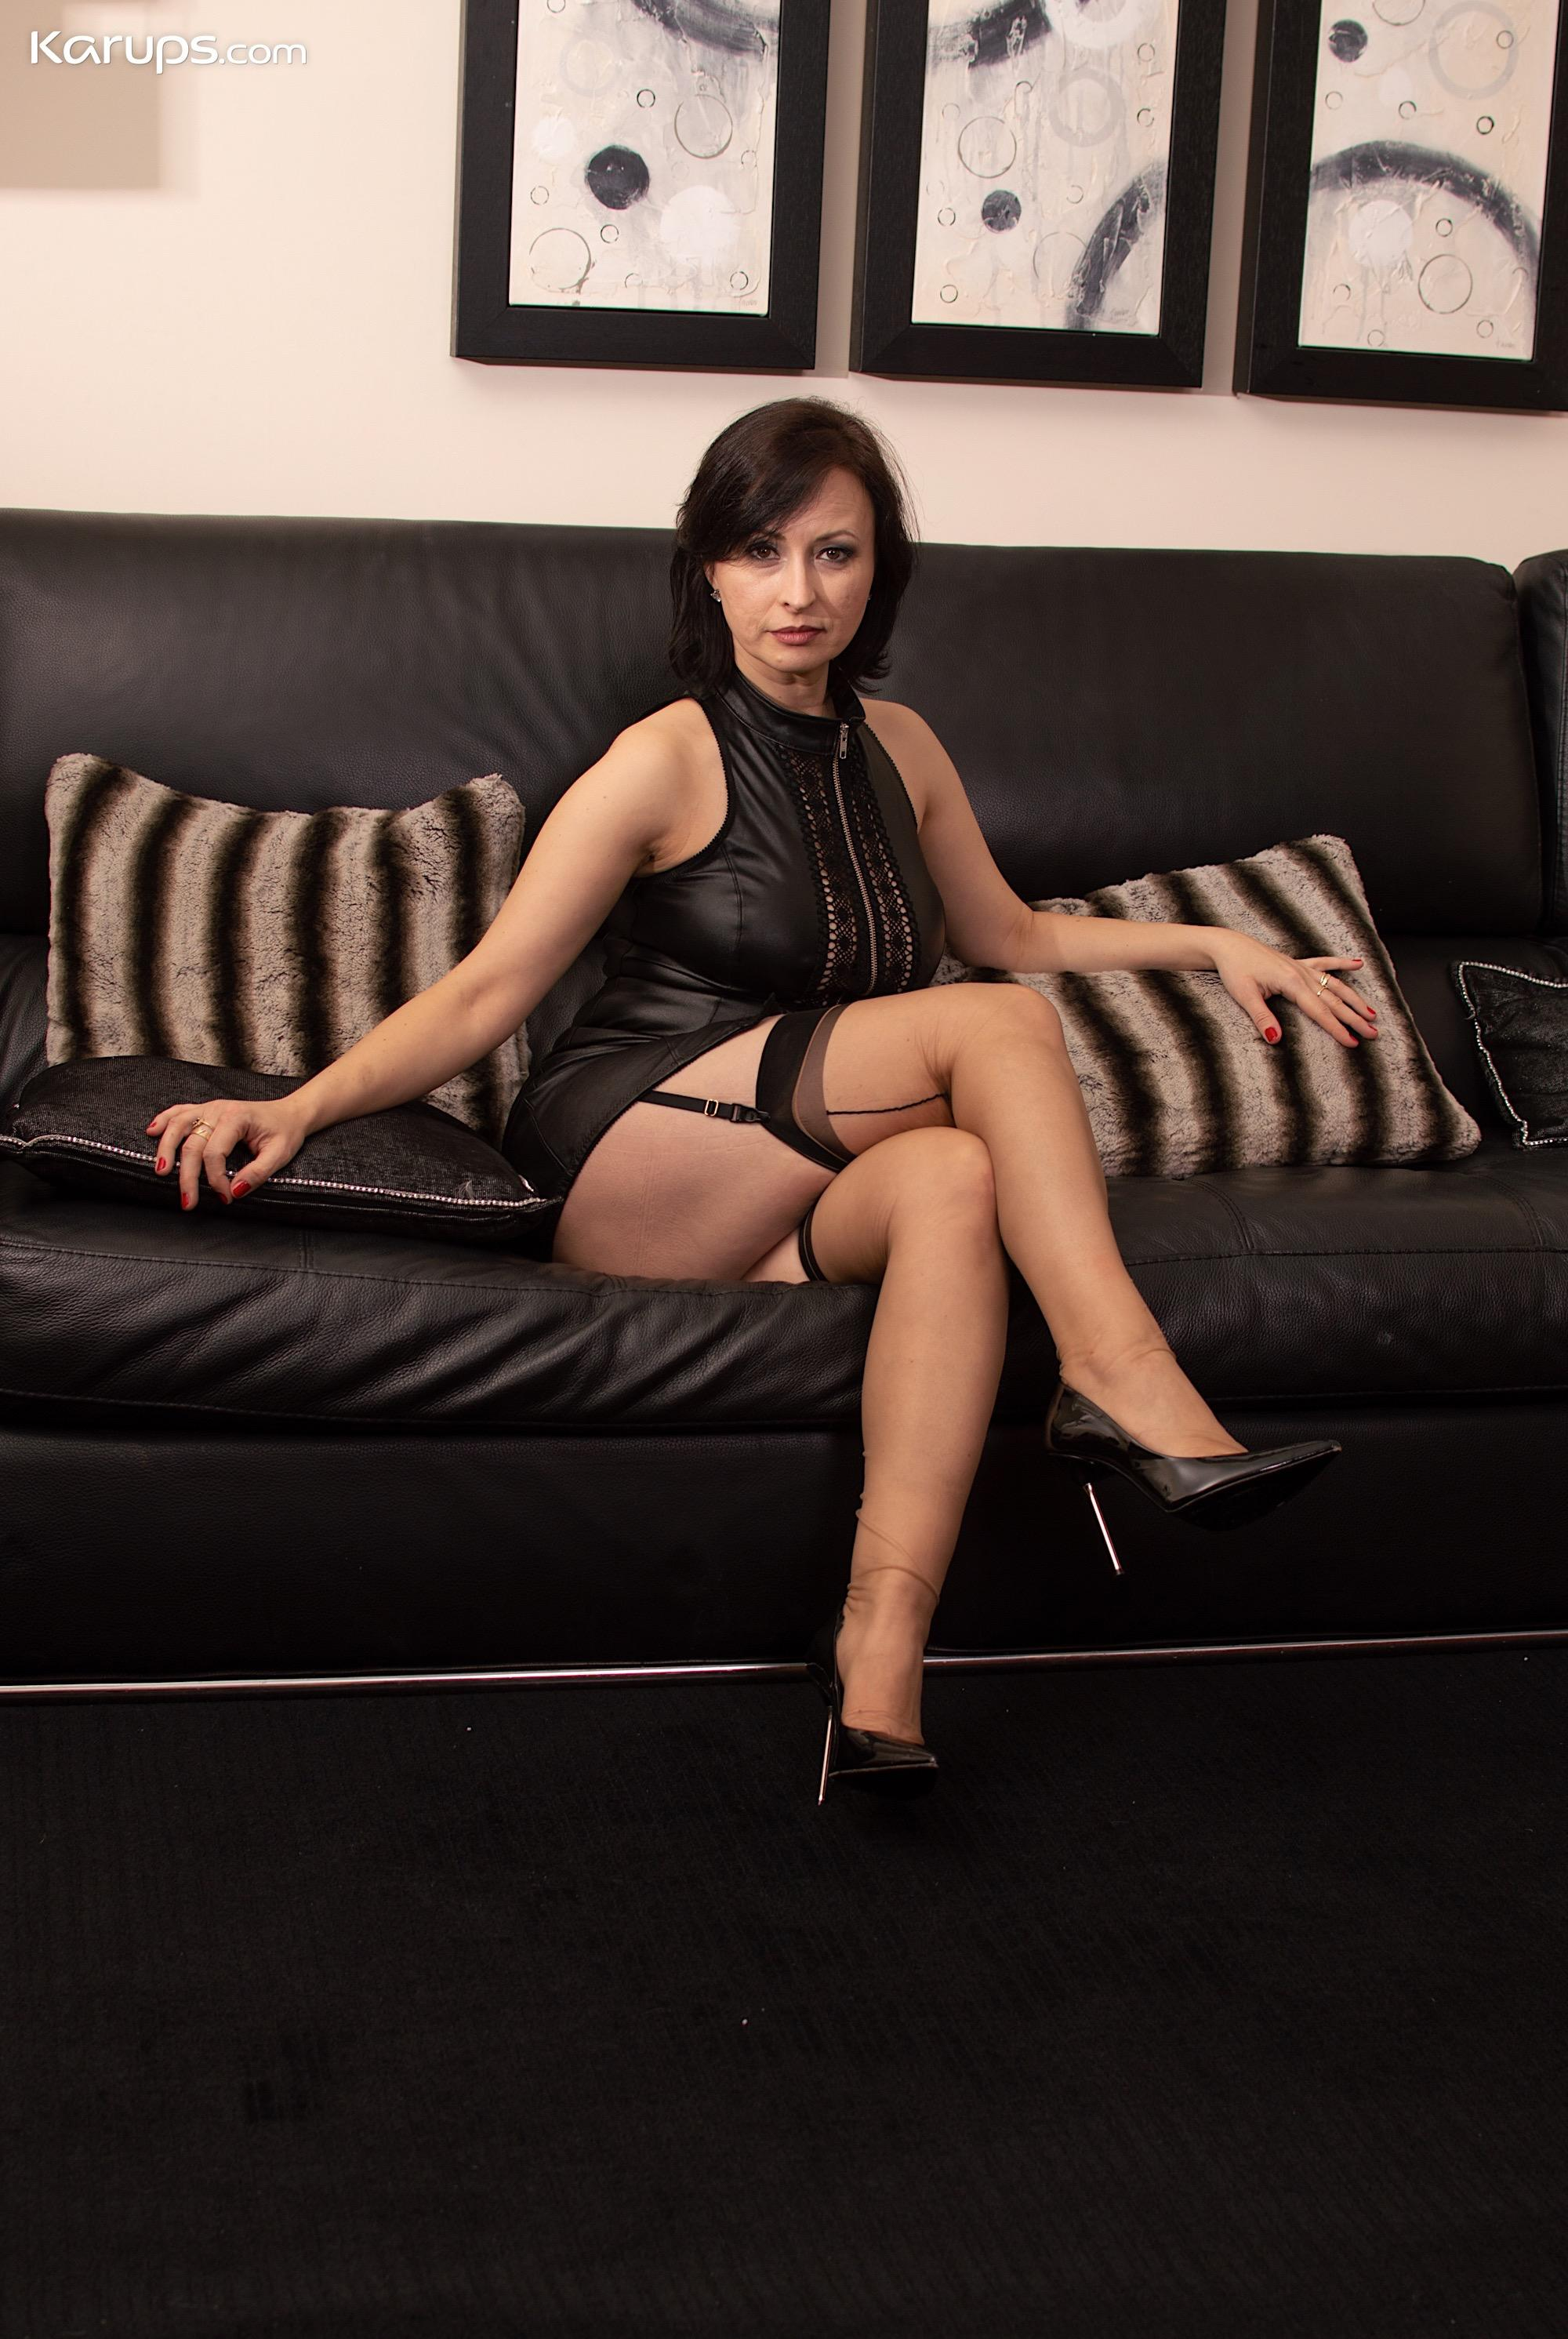 seductive rich 50 year old business woman shows her little hot cat picture 2